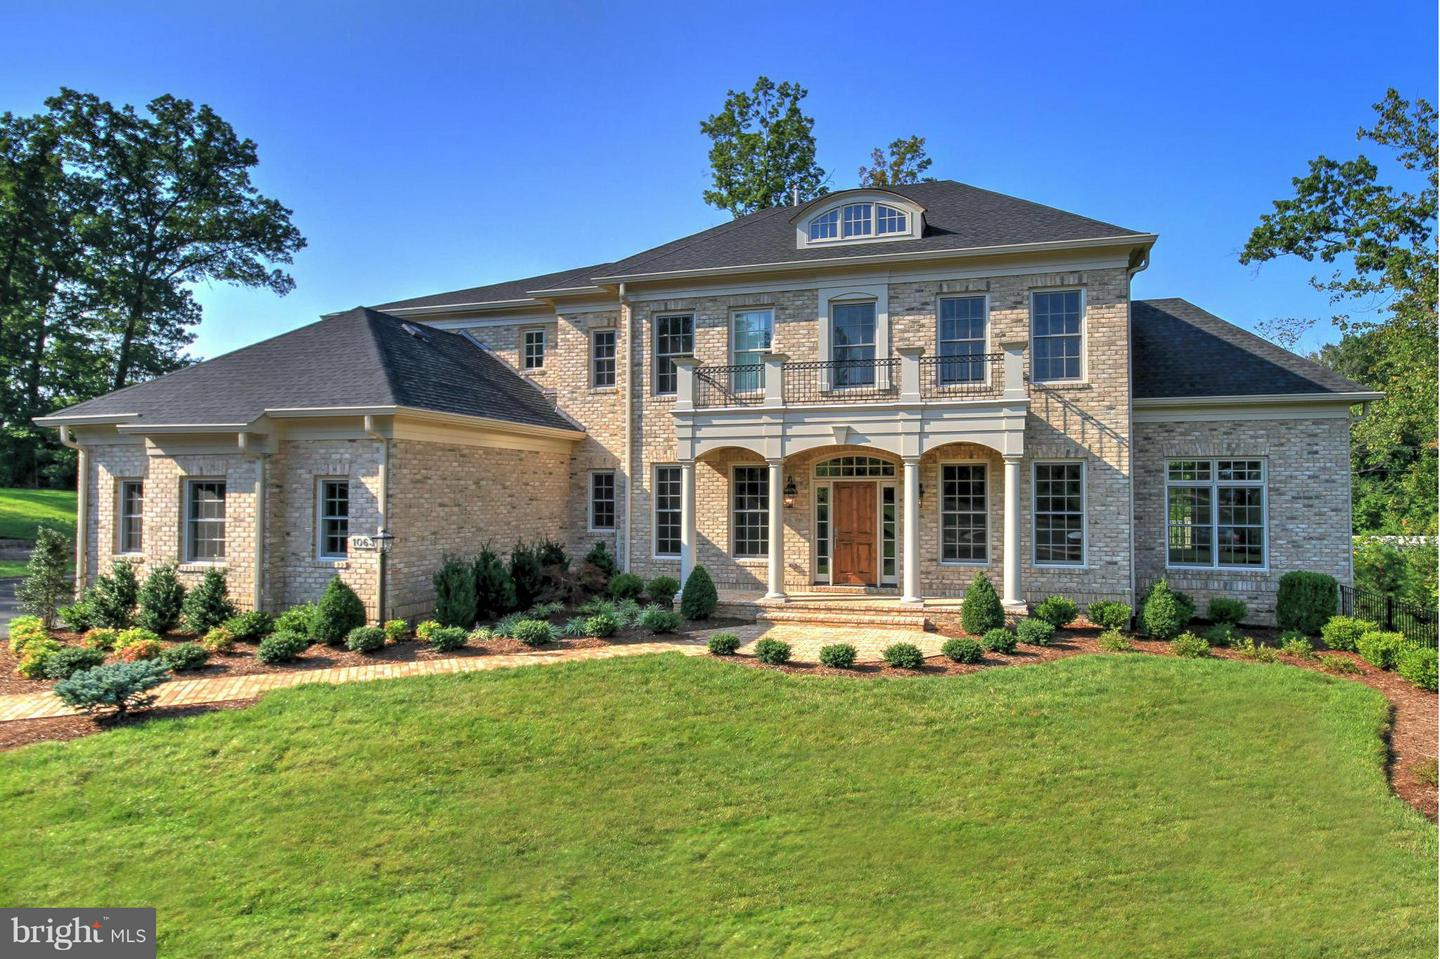 Single Family Home for Sale at Harley Road Harley Road Lorton, Virginia 22079 United States